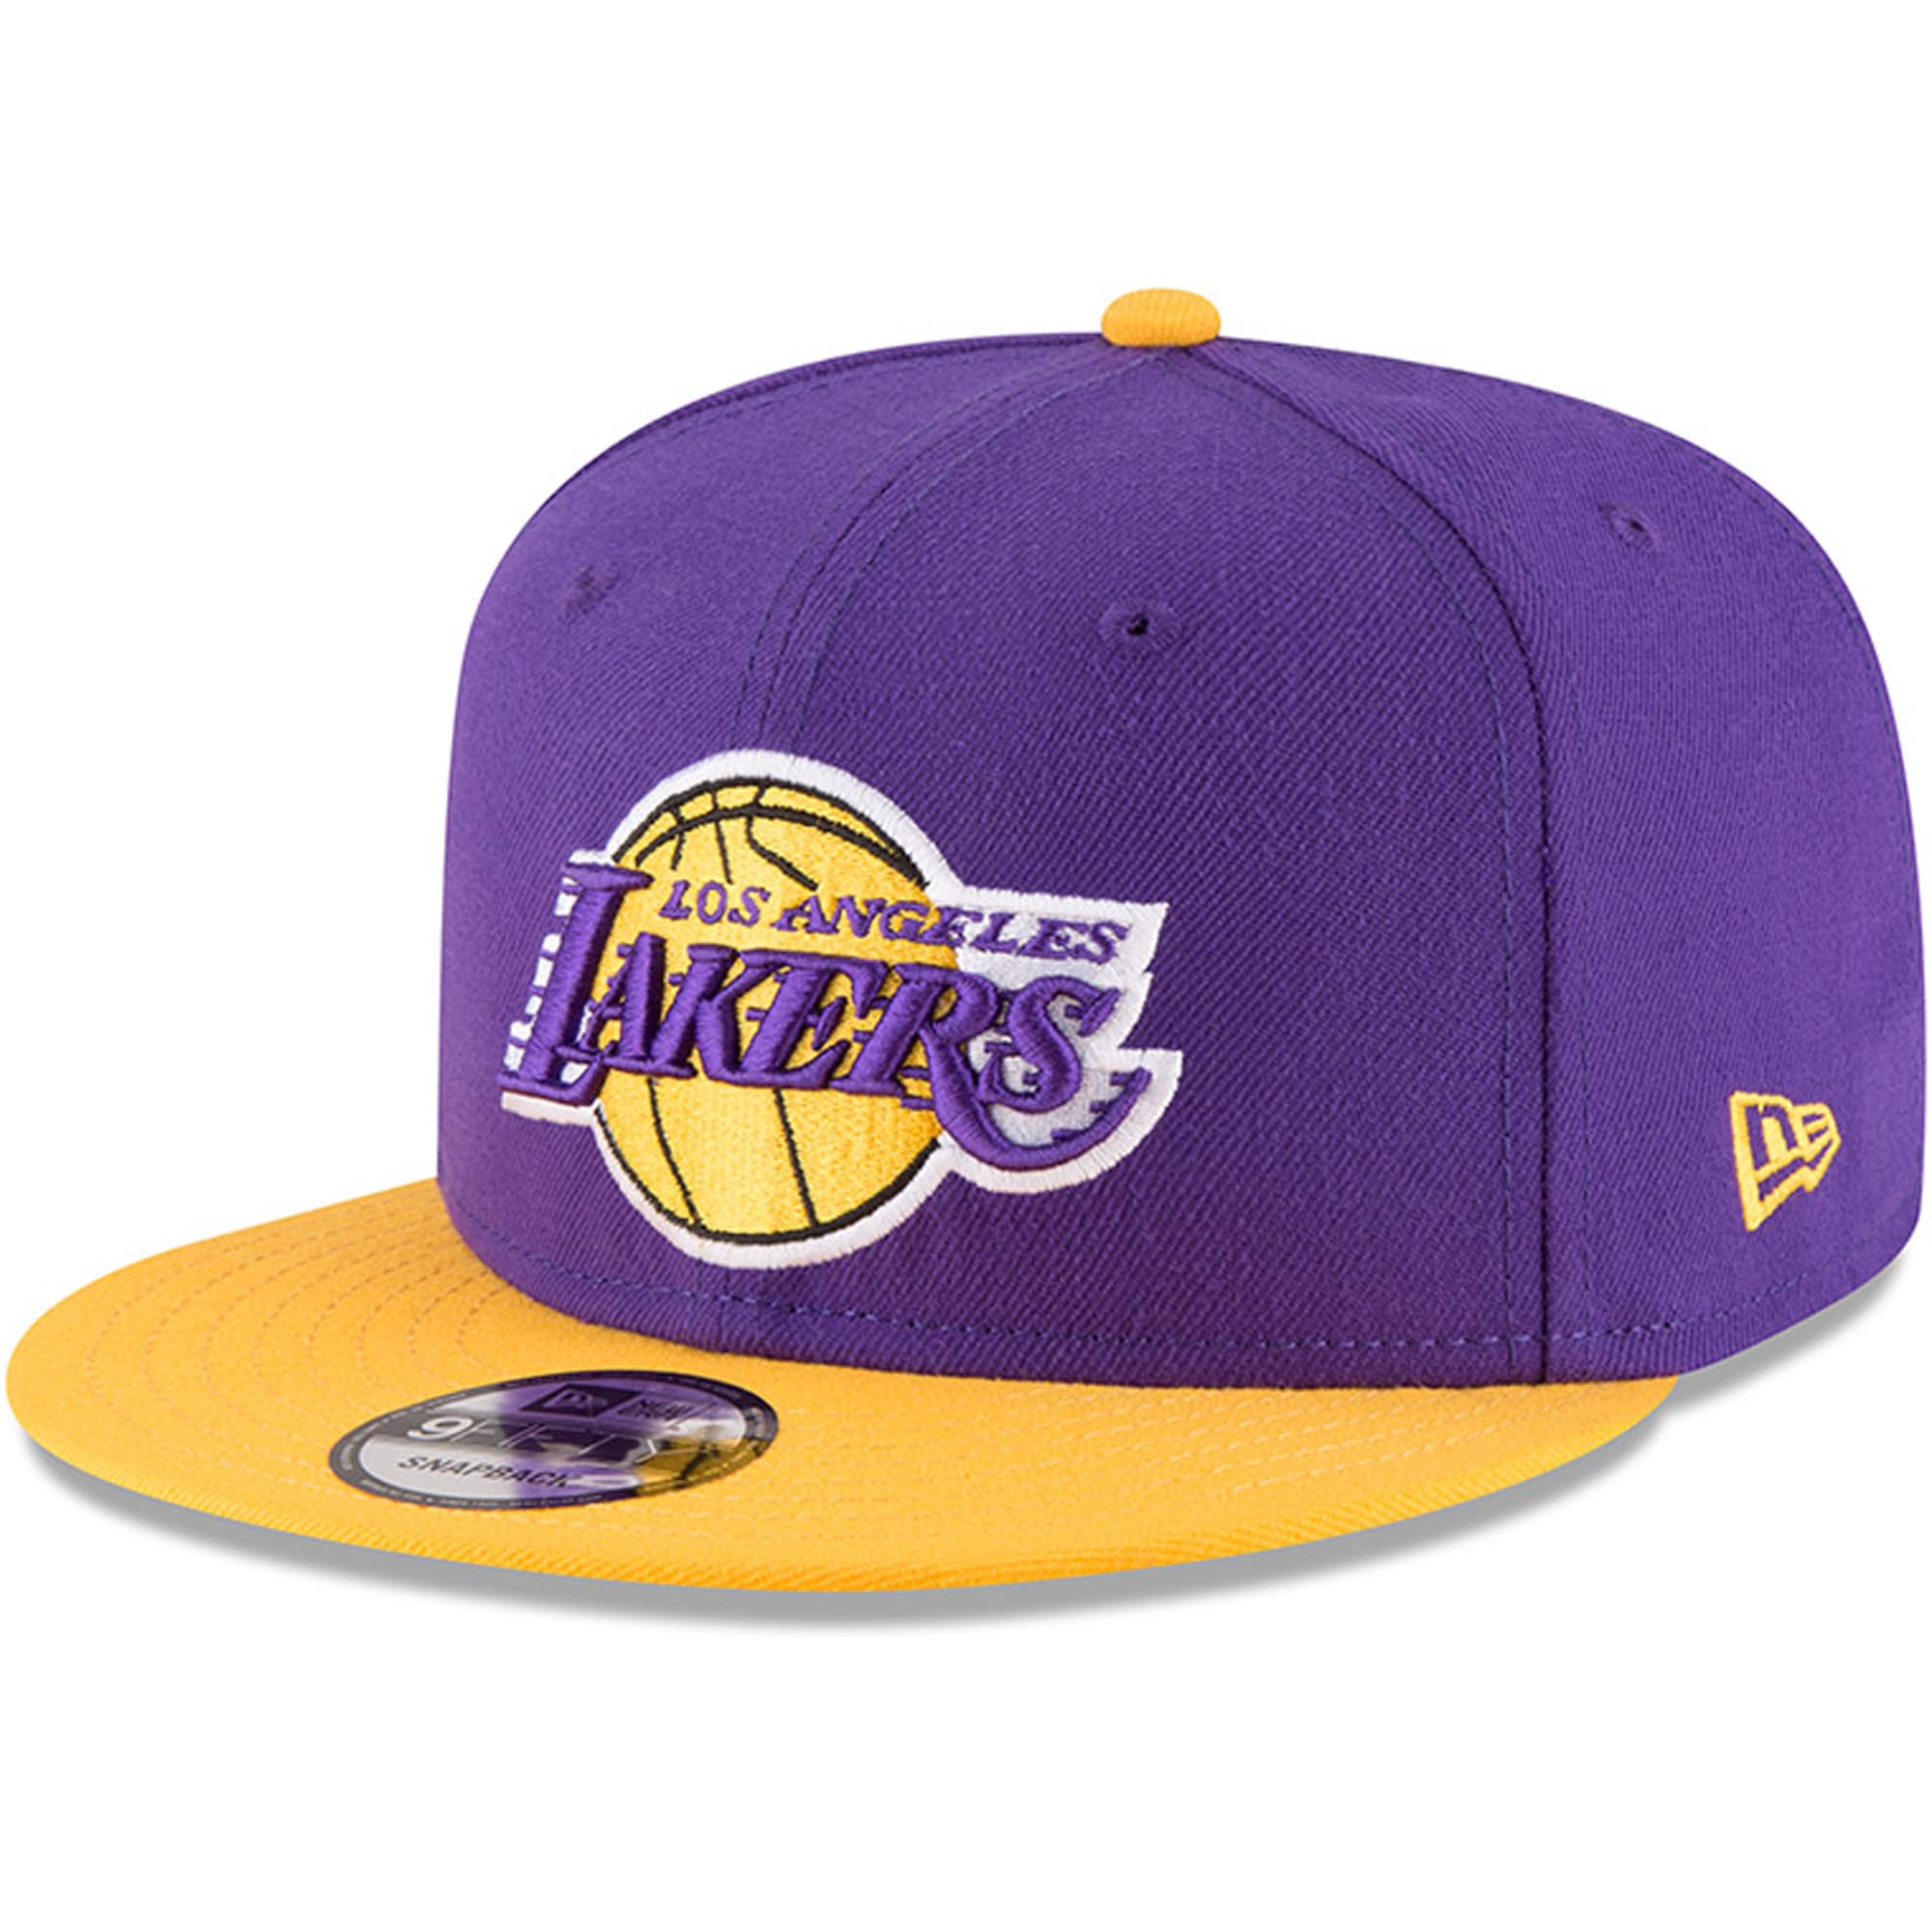 Los Angeles Lakers New Era 2-Tone Original Fit 9FIFTY Adjustable Snapback Hat - Purple/Gold